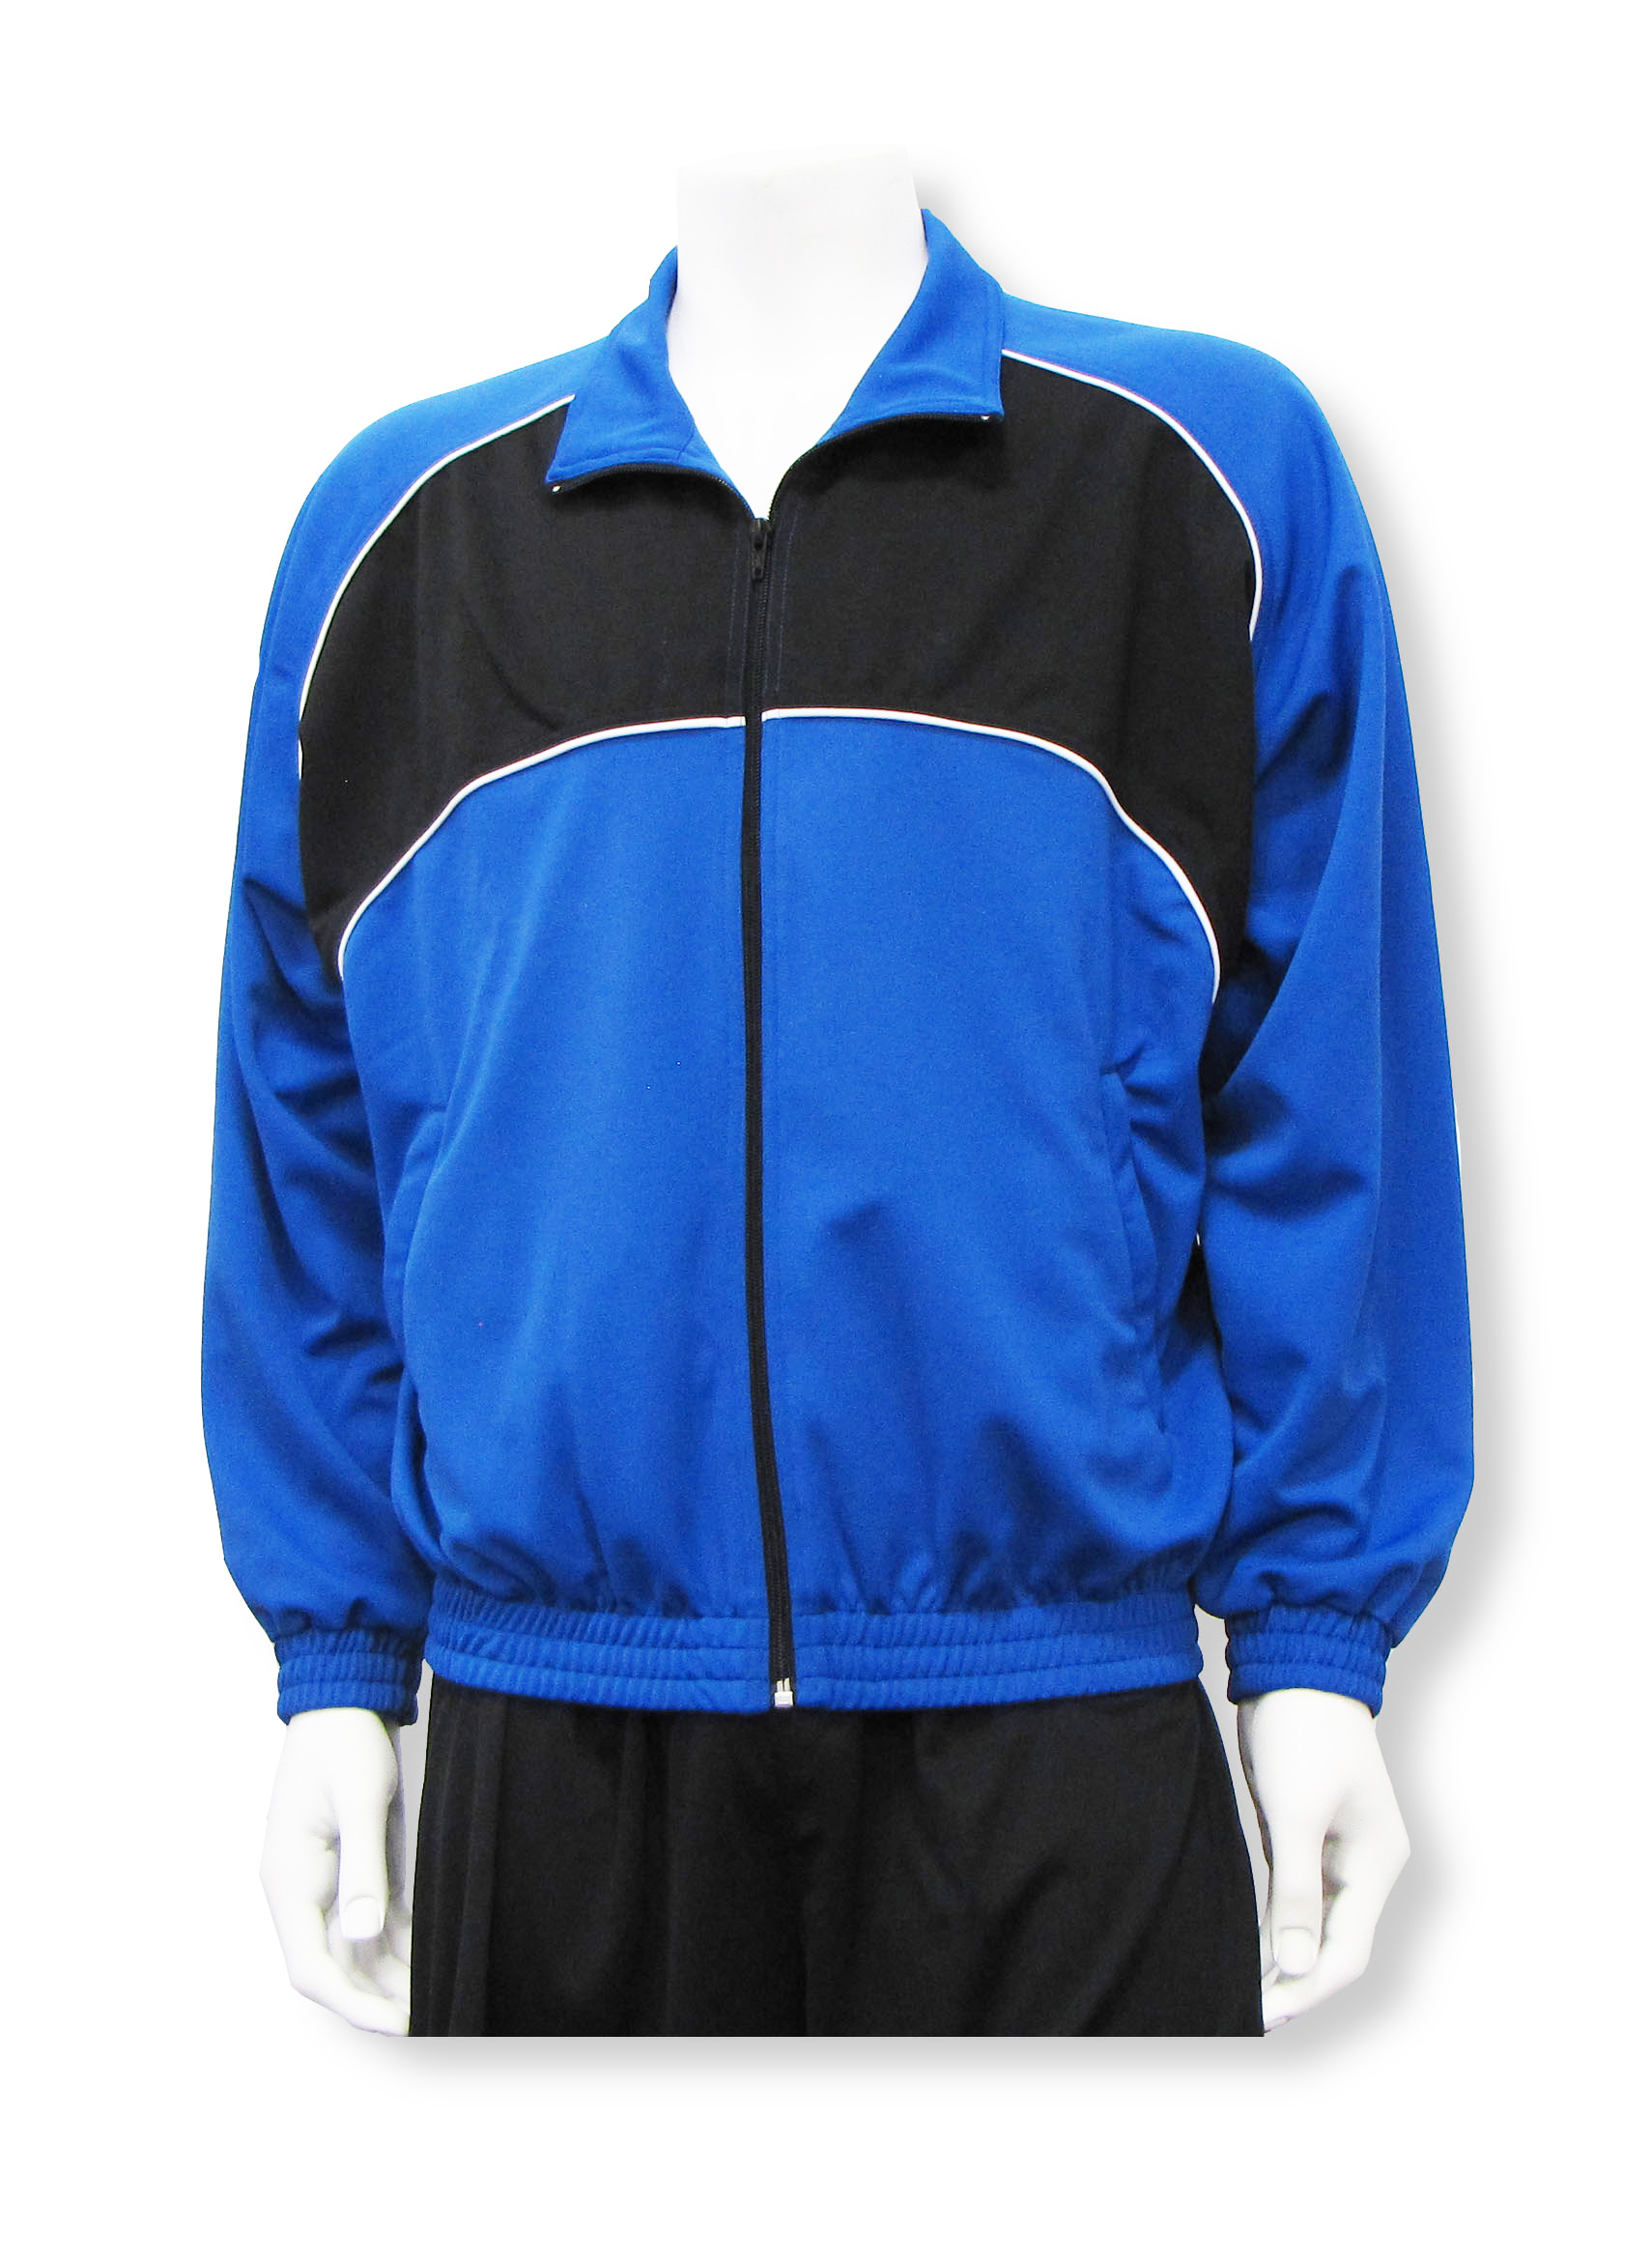 Crossfire soccer warm up jacket in royal/black by Code Four Athletics